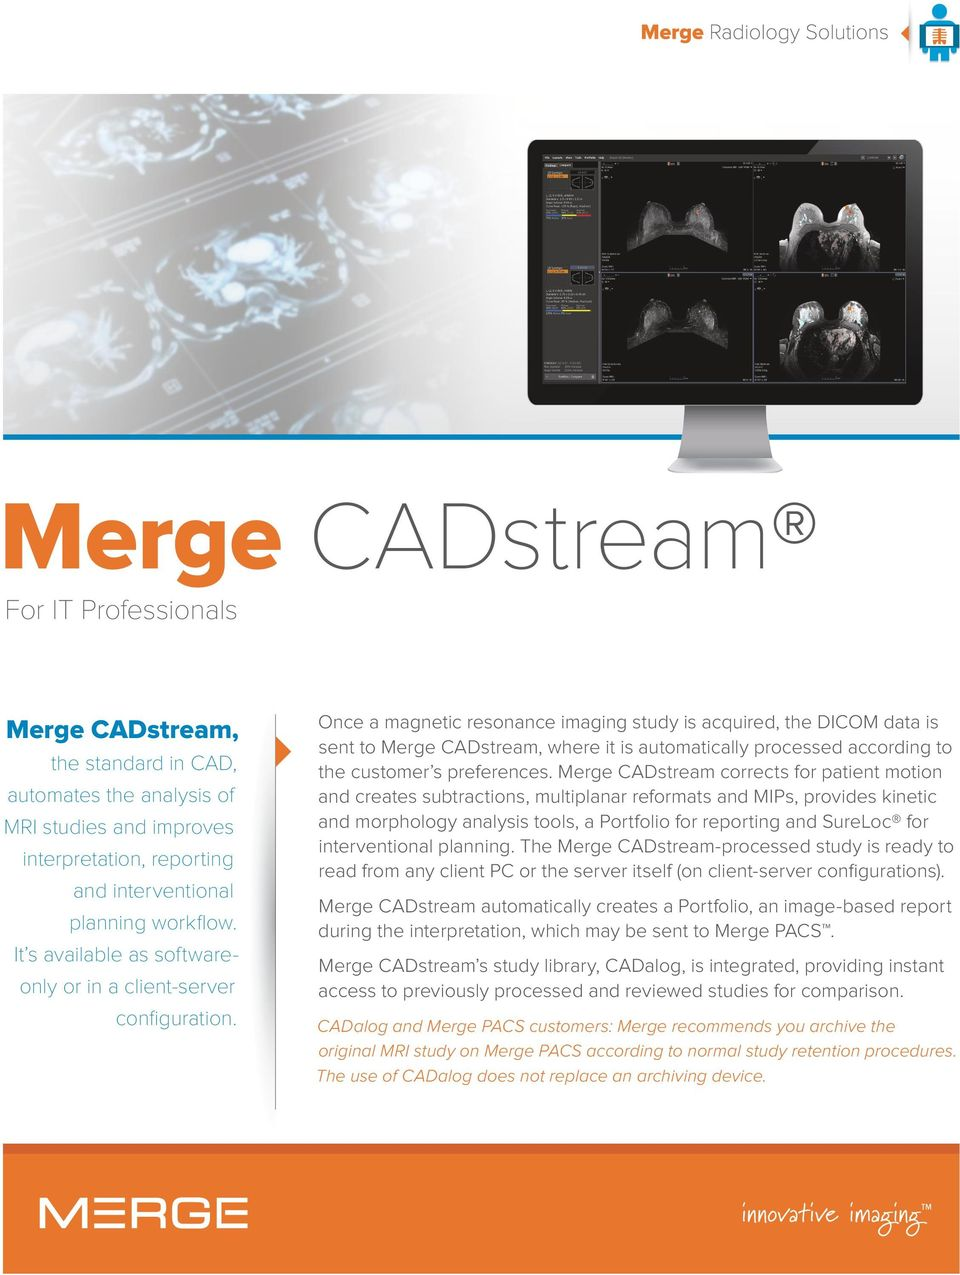 Once a magnetic resonance imaging study is acquired, the DICOM data is sent to Merge CADstream, where it is automatically processed according to the customer s preferences.